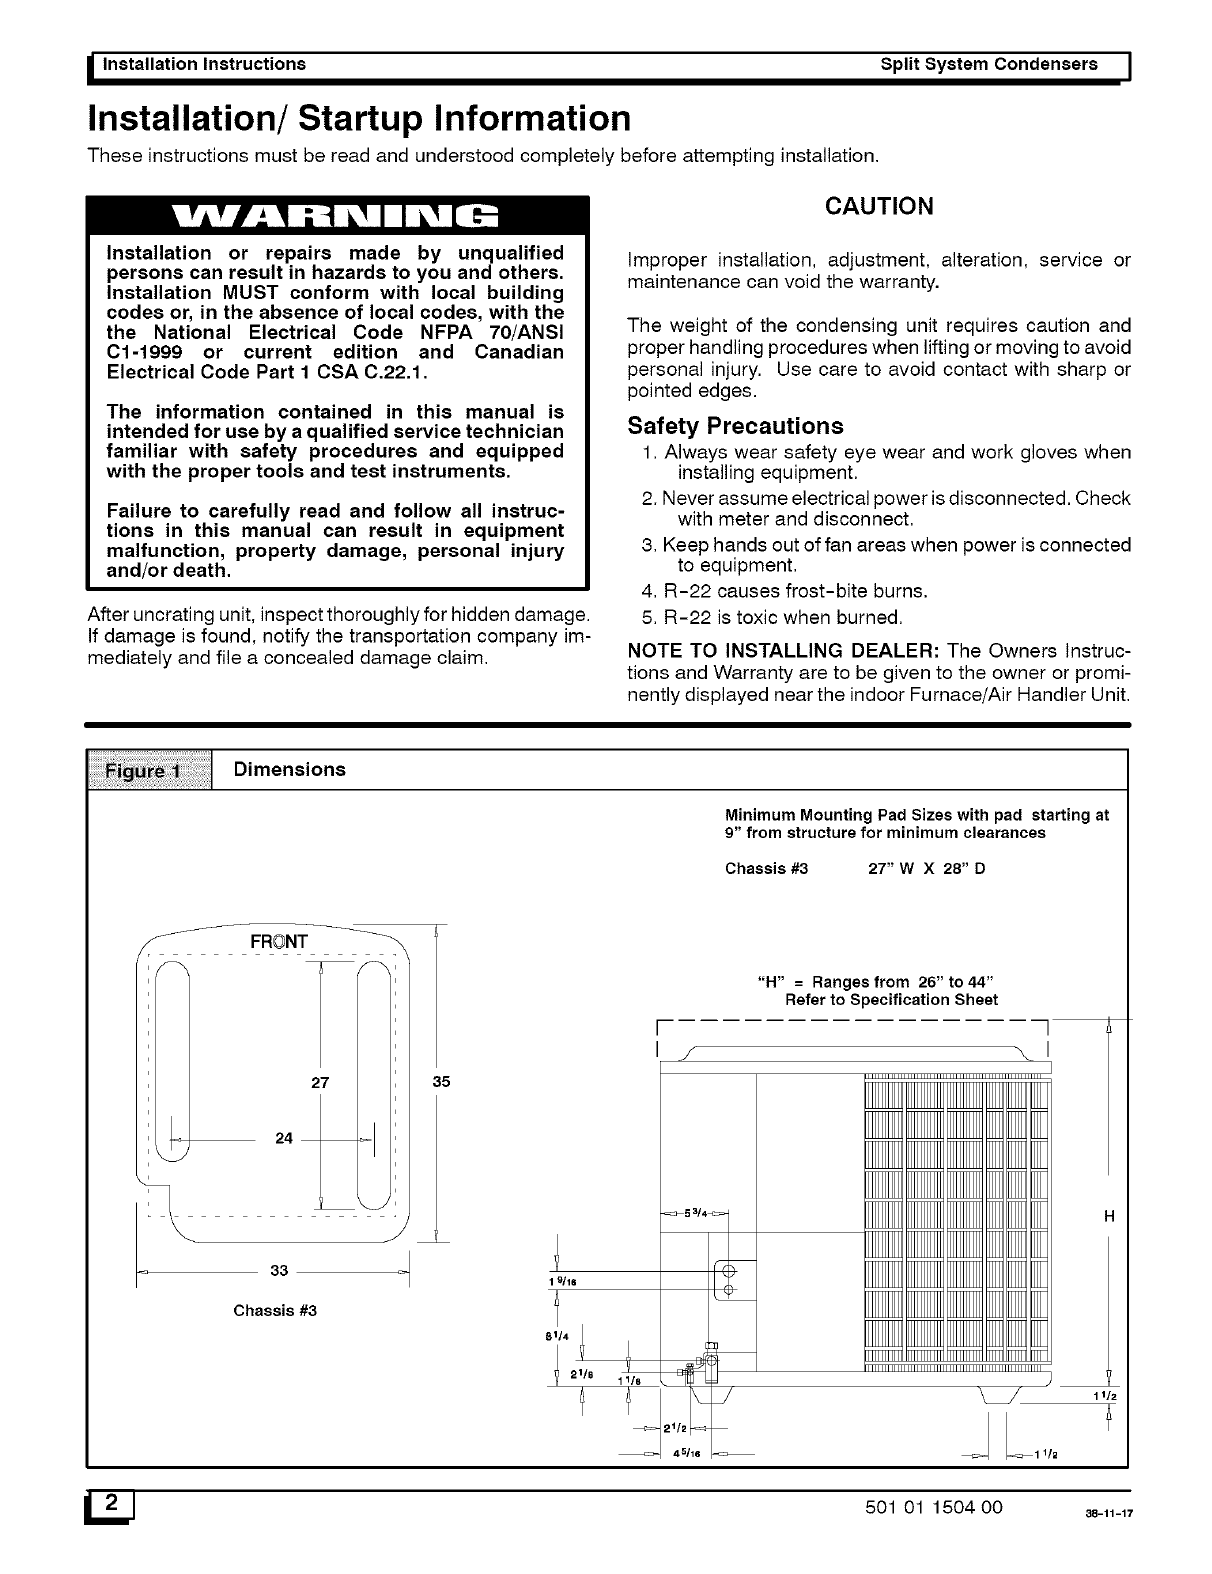 Related Images with Fuse Box For Ford Excursion Trusted Wiring Diagram F  Explained Diagrams Ac Schematic Interior Circuit Electrical 2003 F250 7 3  Cell ...